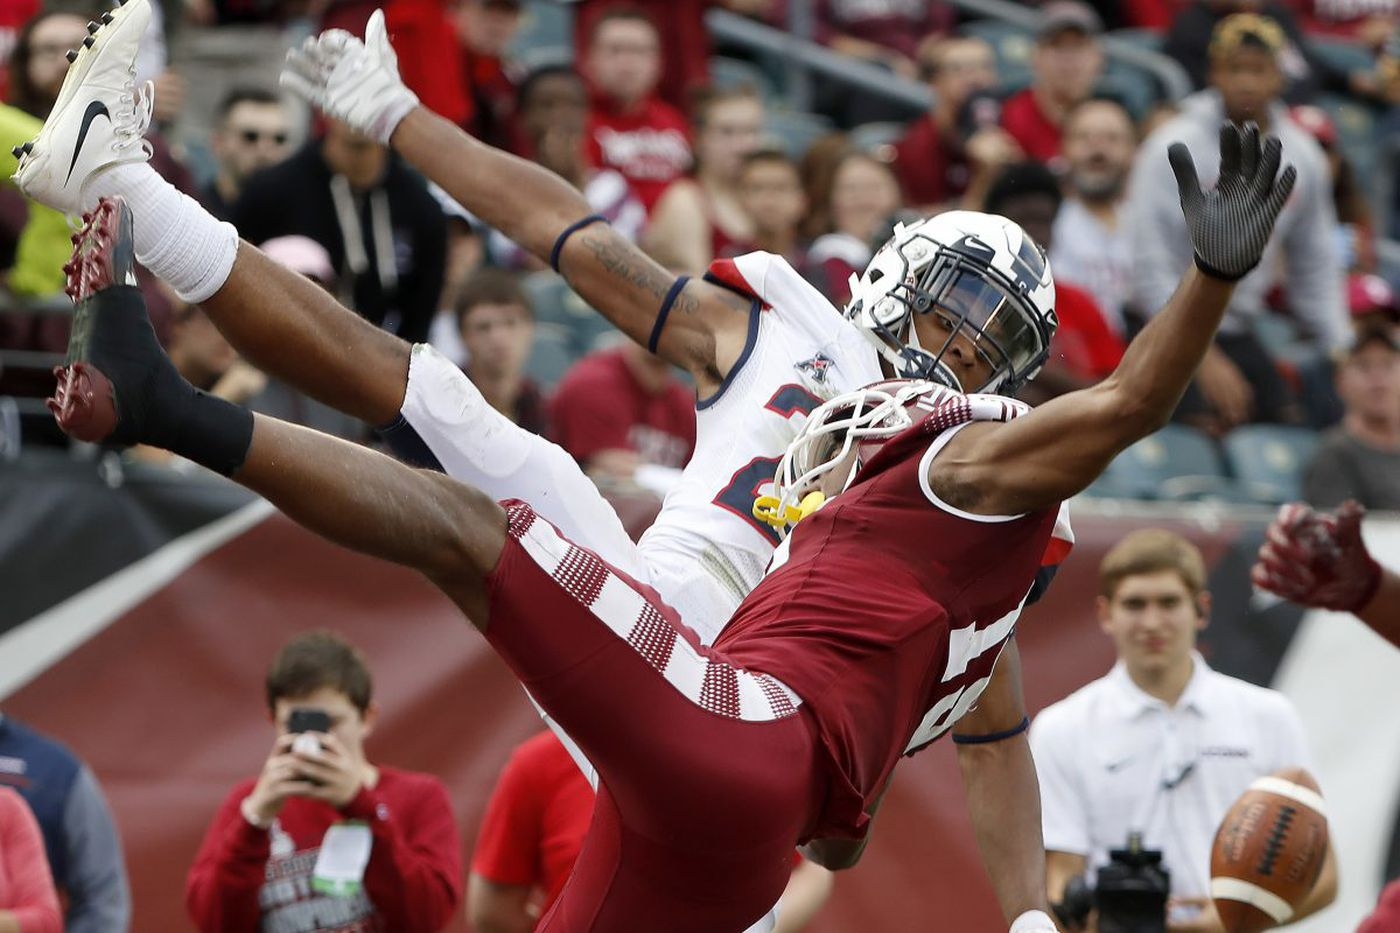 College football roundup: Temple gets upset at home by UConn